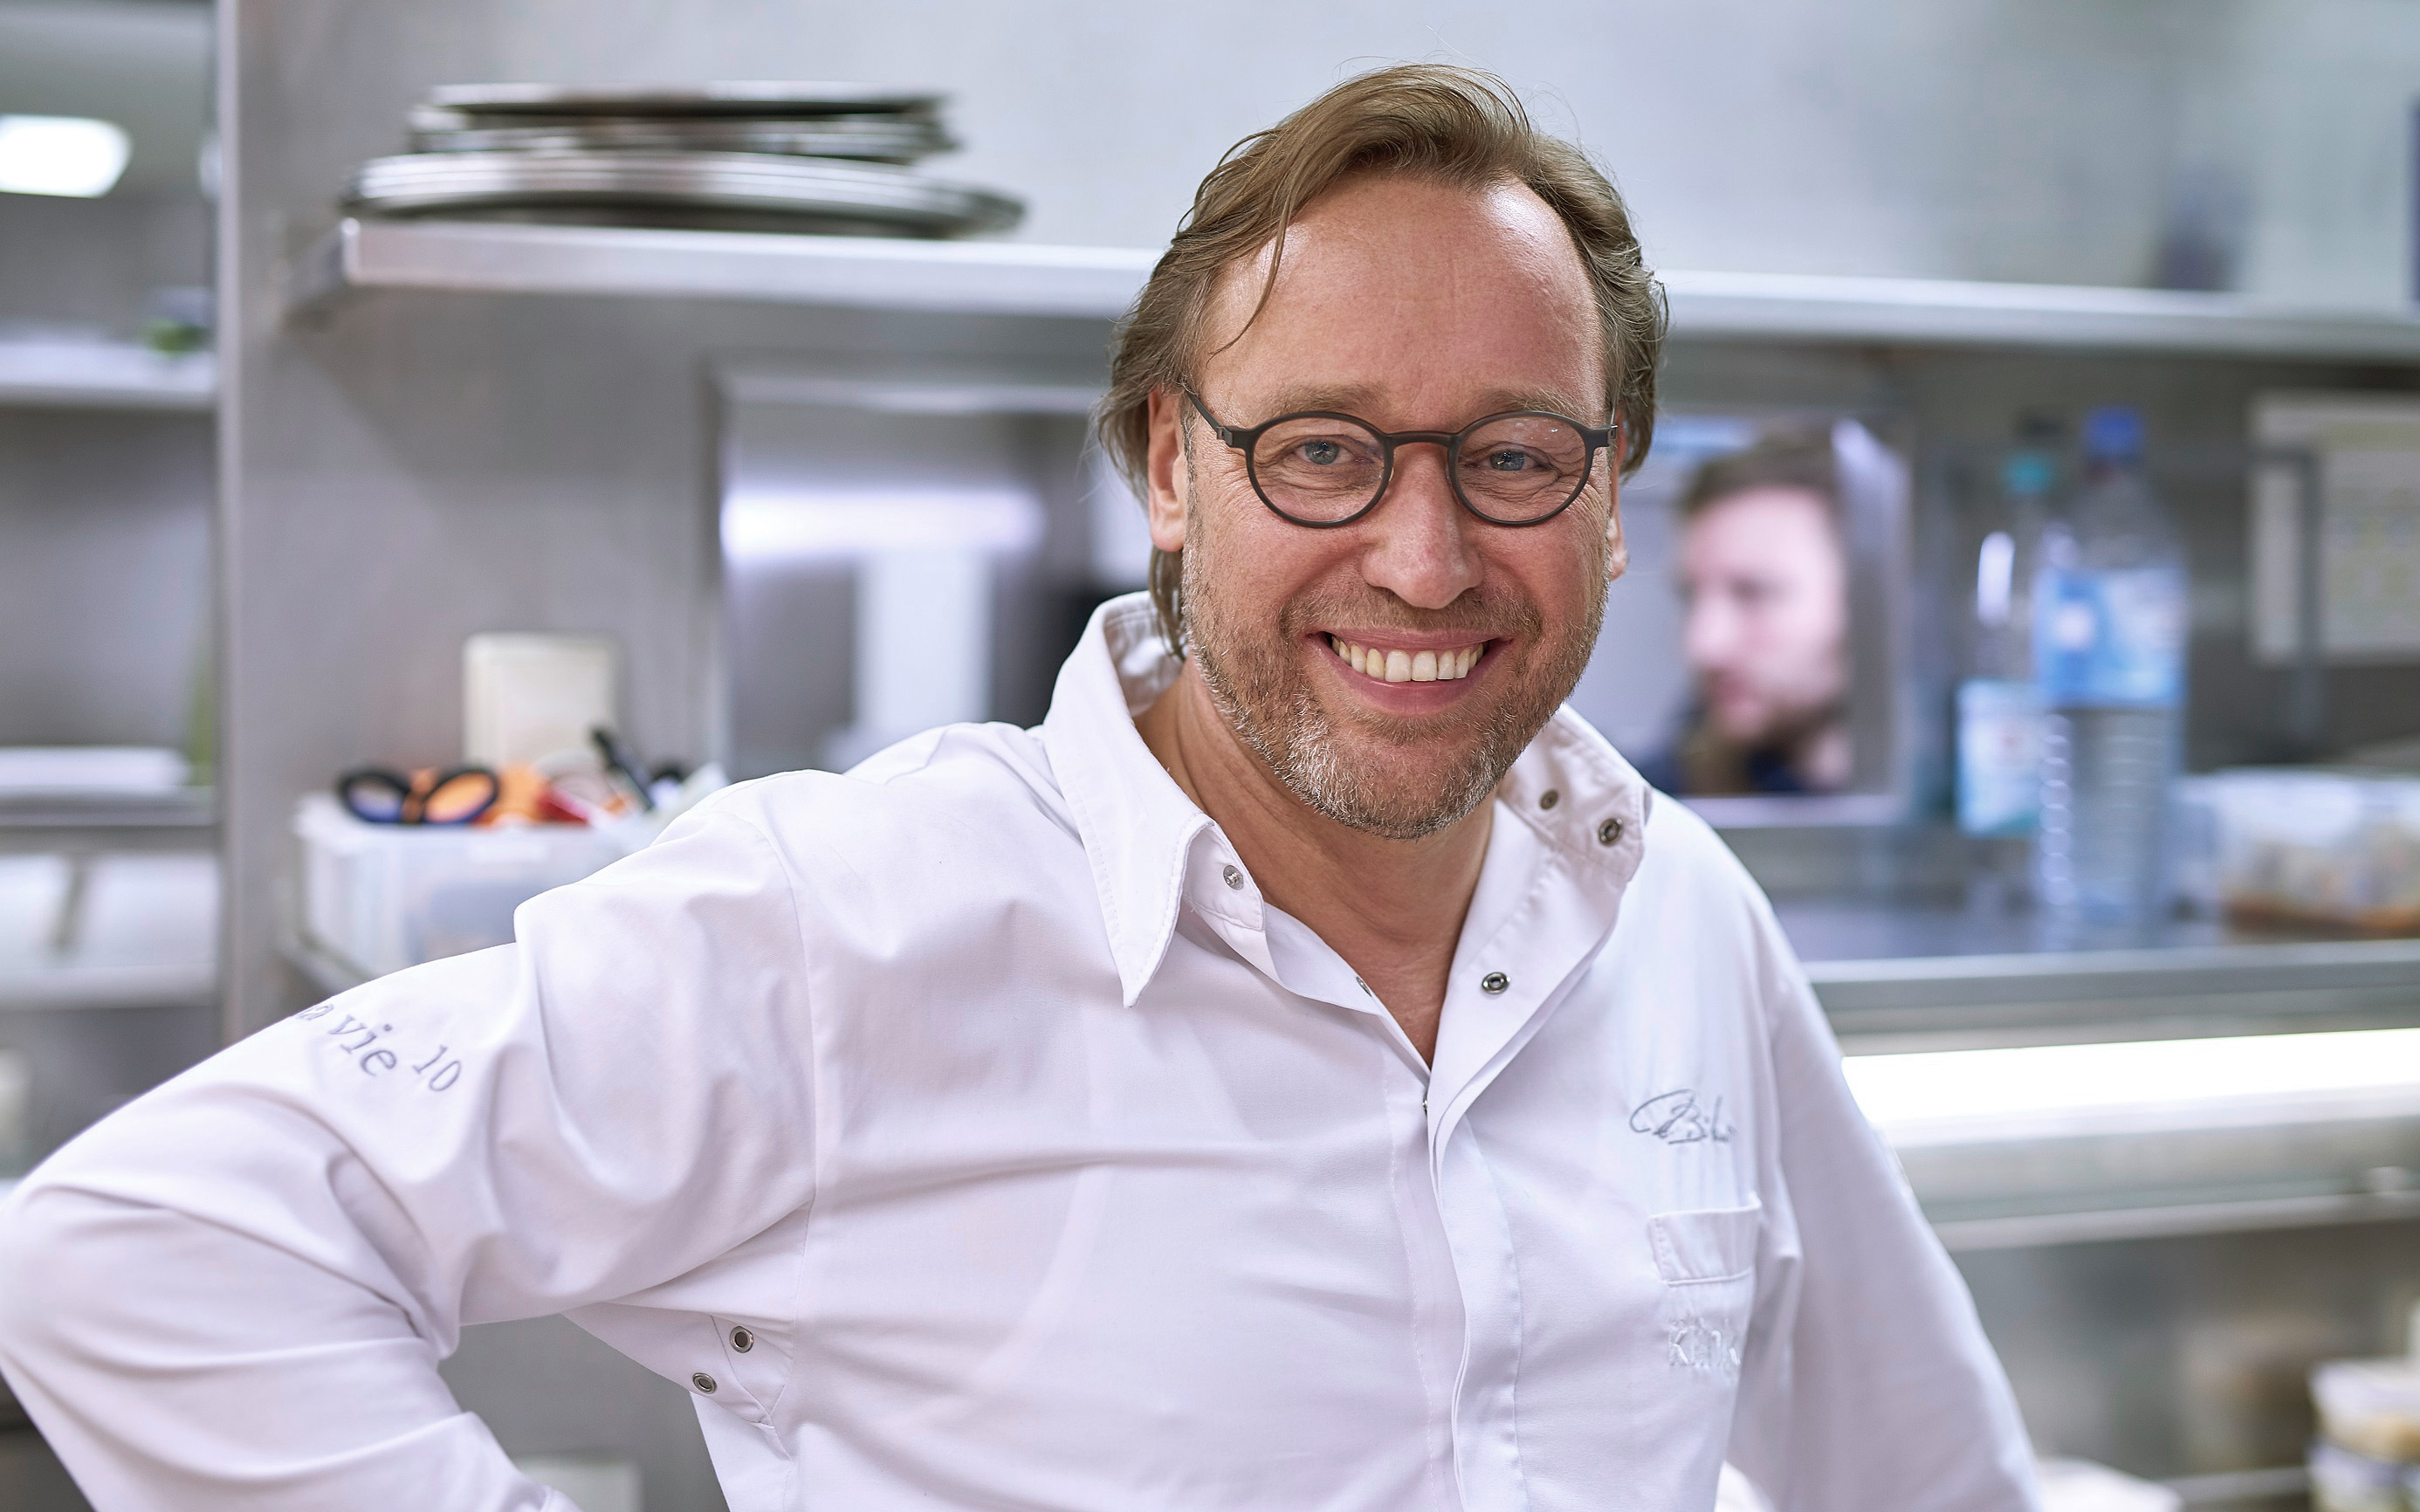 Three Michelin star chef Thomas Bühner